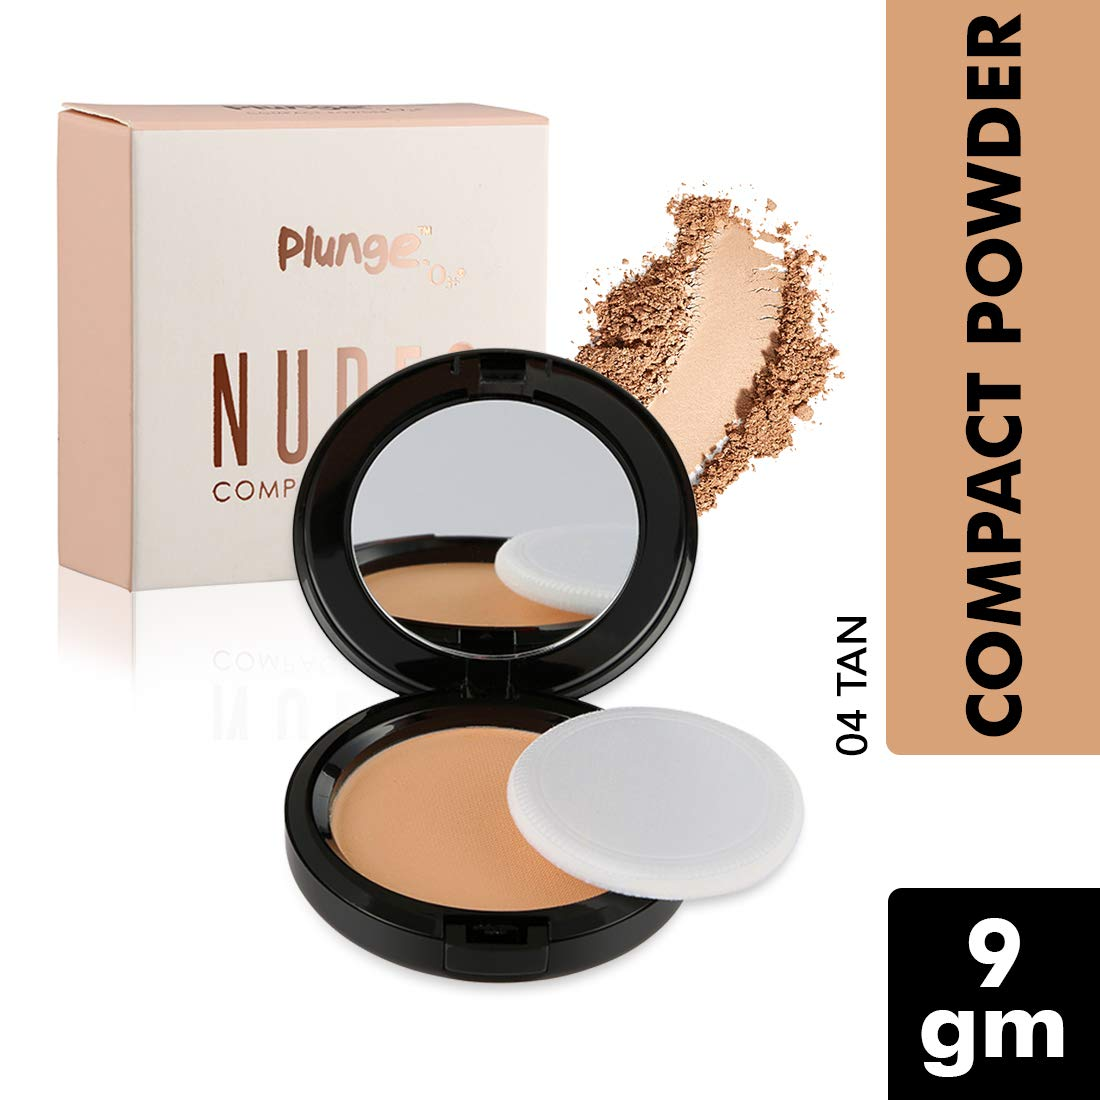 O3+ Plunge Nudes Compact Powder Makeup Foundation for Even Tone, Blemish and Imperfection Cover with Sponge and Mirror (04 TAN, 9 GM)